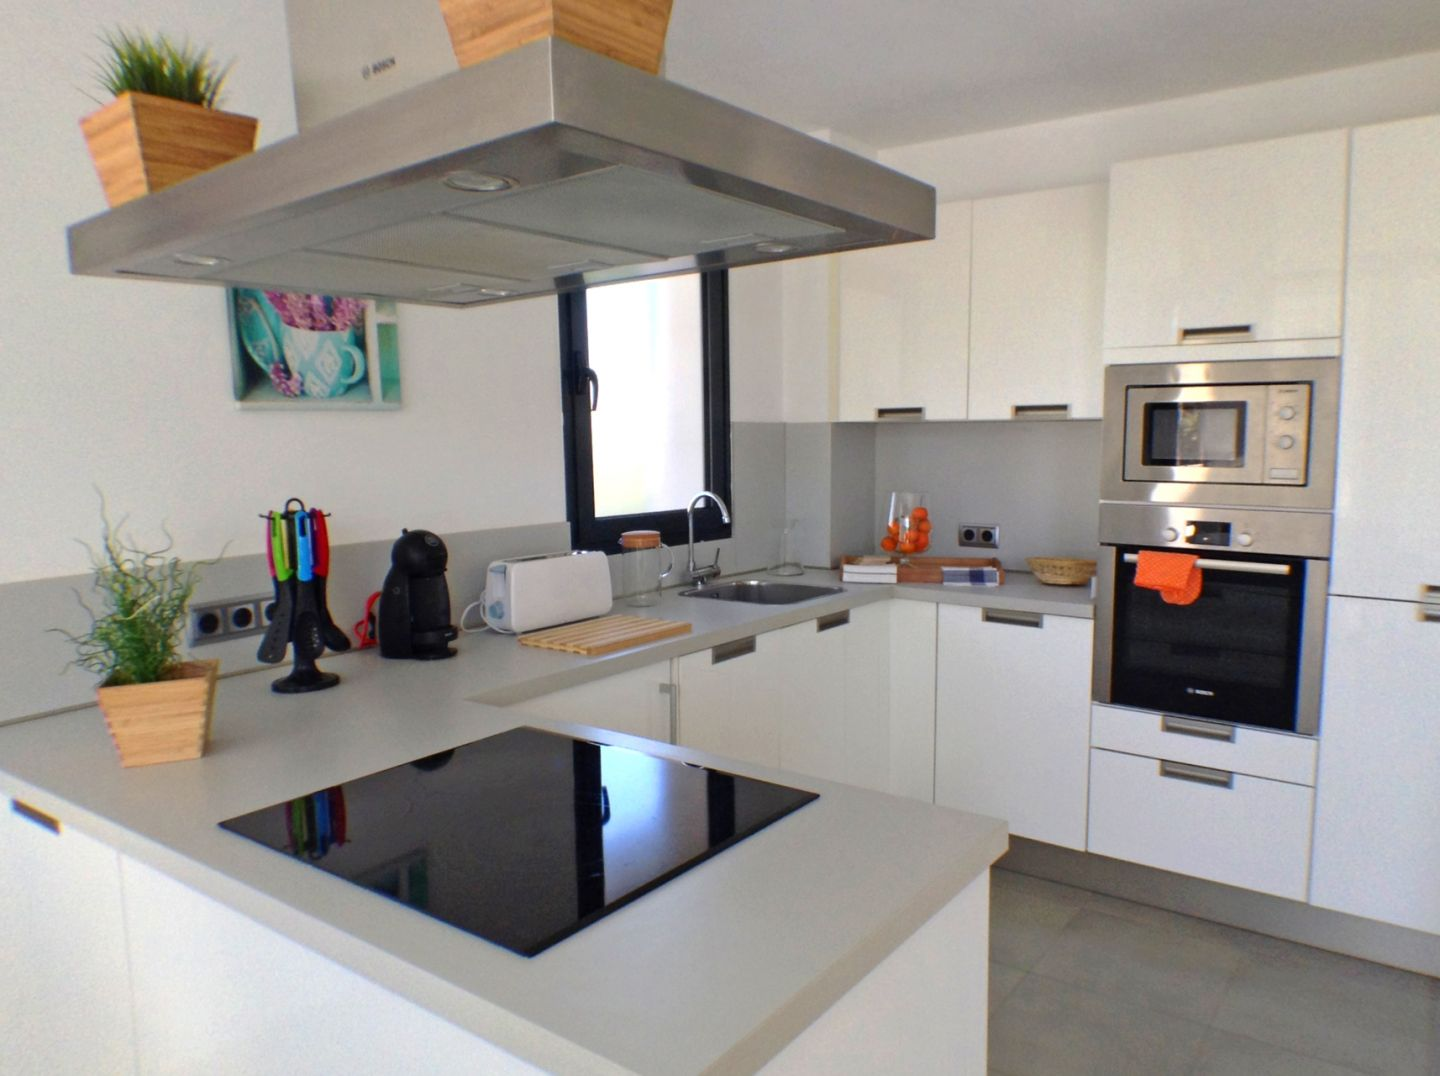 3 Bed Duplex for sale in PUERTO POLLENSA 9